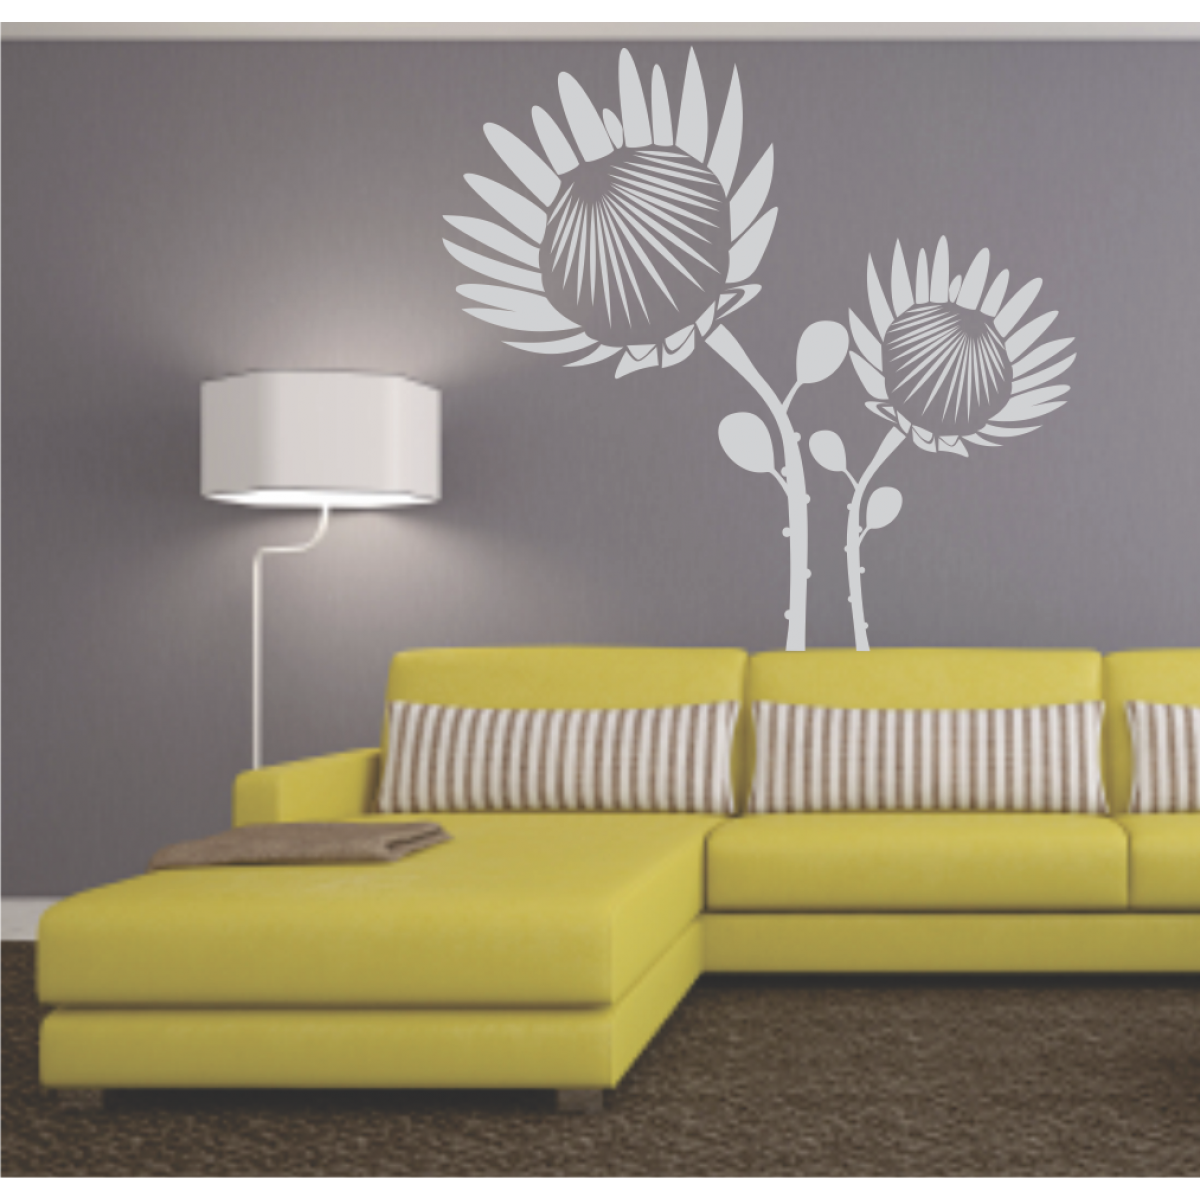 Wall Art / Wallsticker | Craft ideas - Protea Power | Pinterest ...